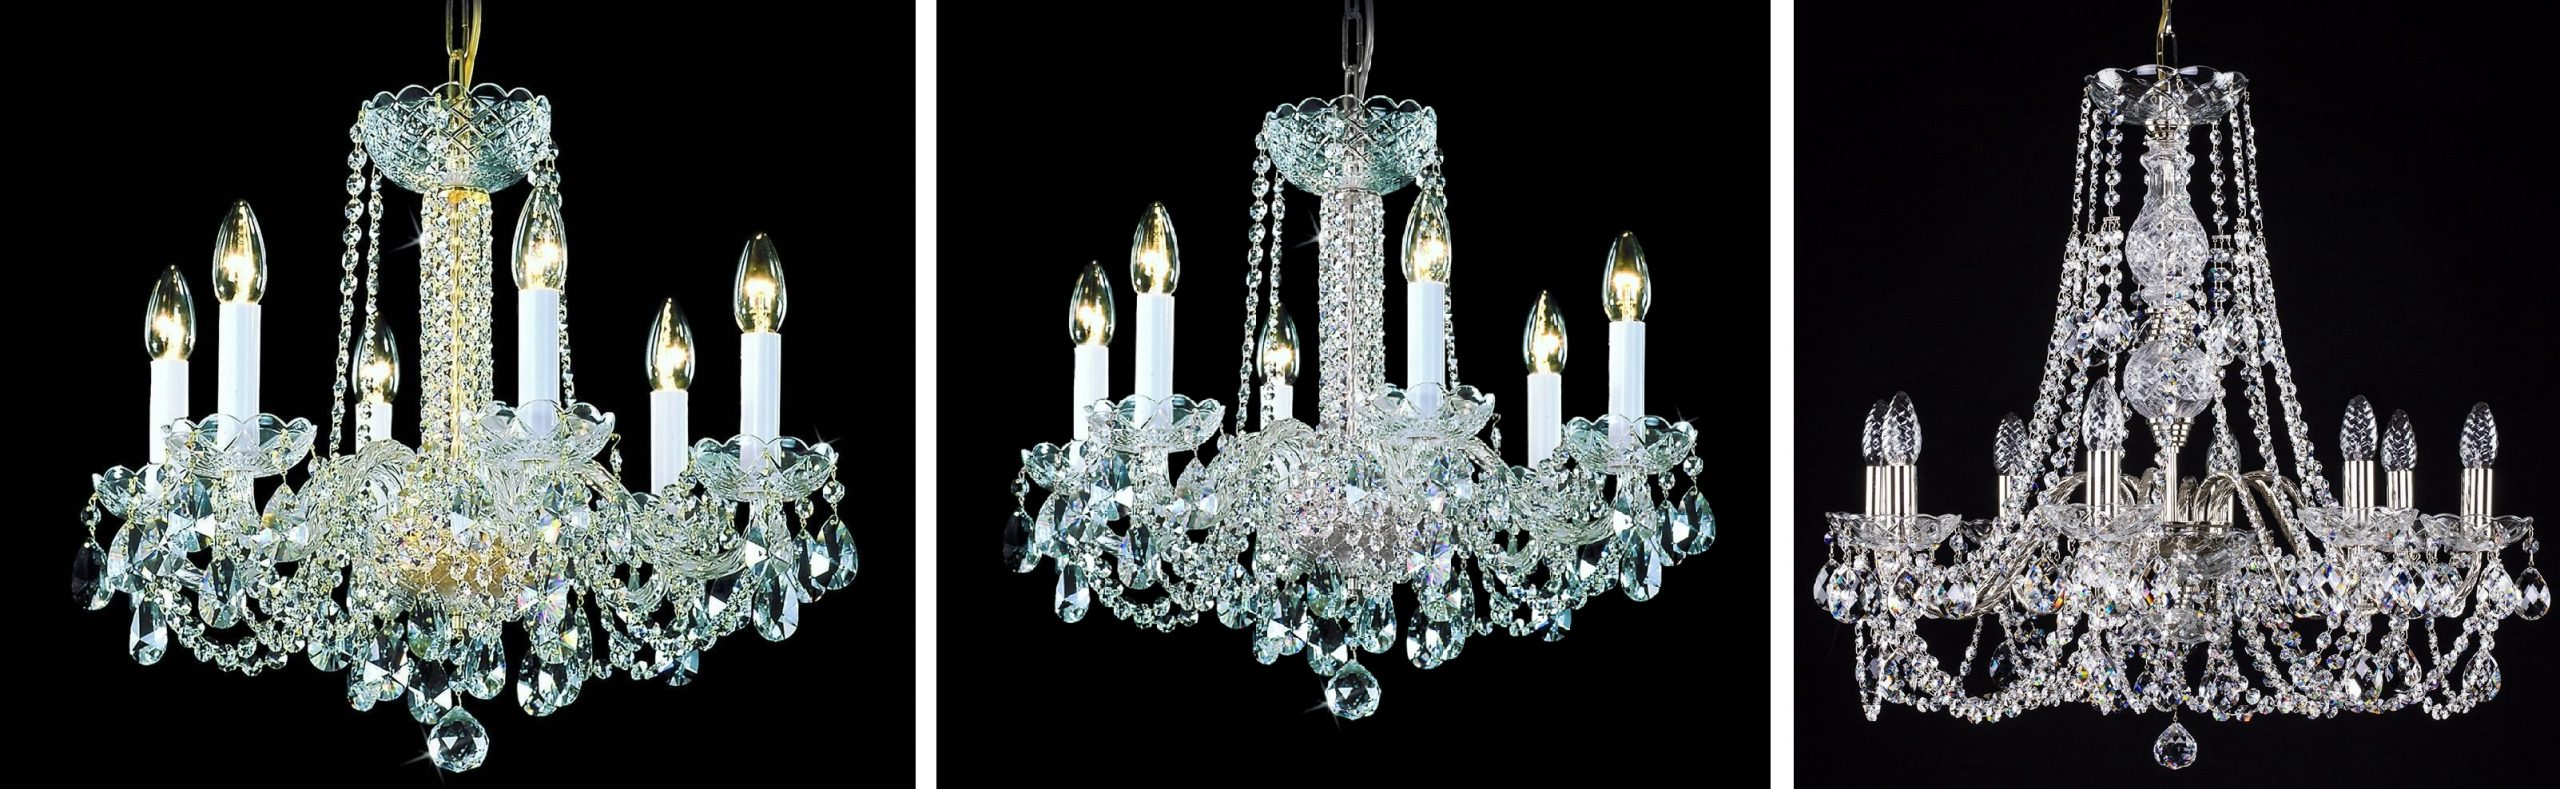 Chandelier rental and chandelier hire in France